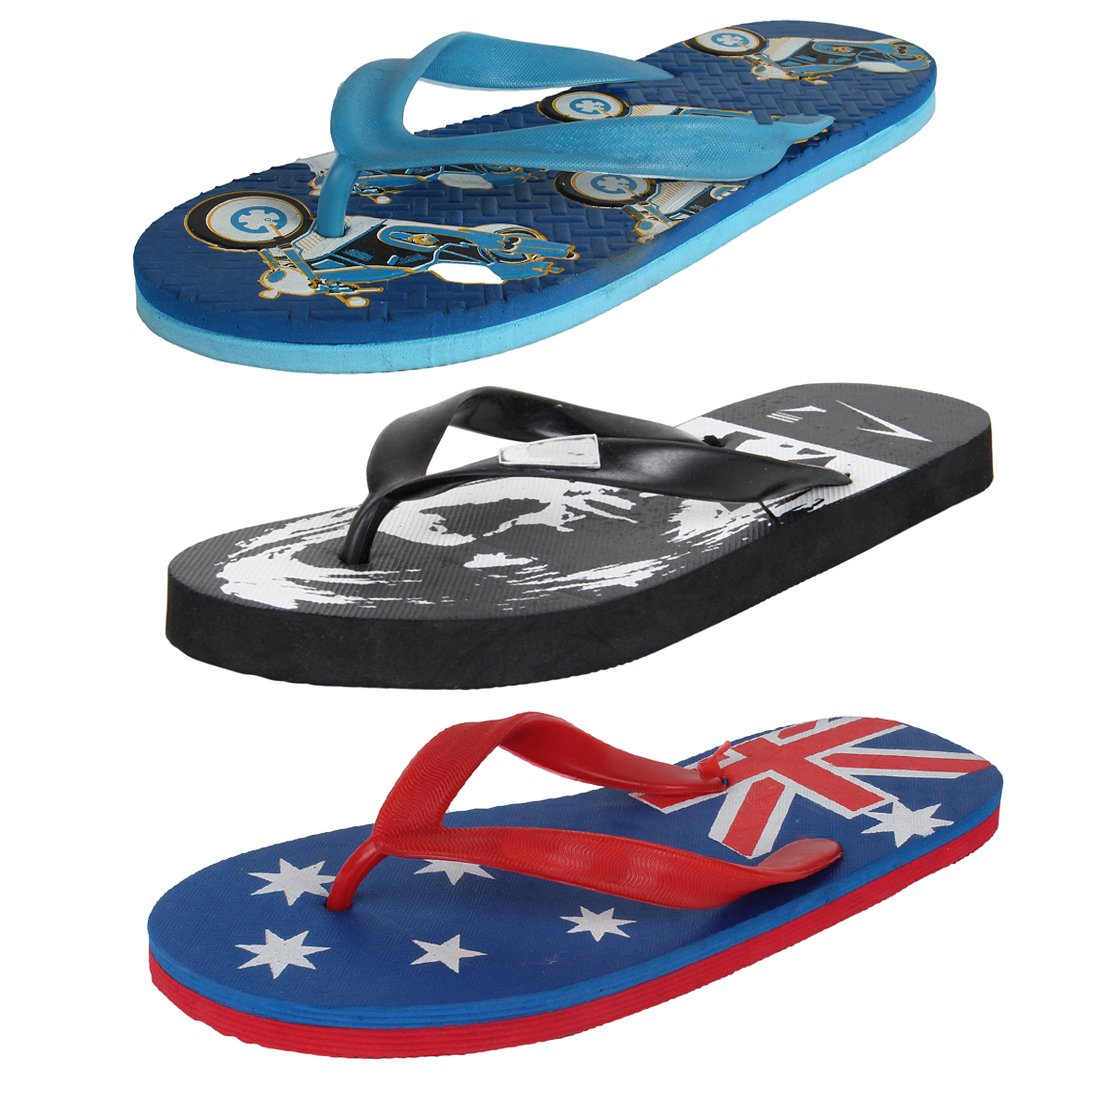 8d844c88dc6cb Earton Men Combo Pack of 3 Flip-Flops   House Slippers  Amazon.in  Shoes    Handbags